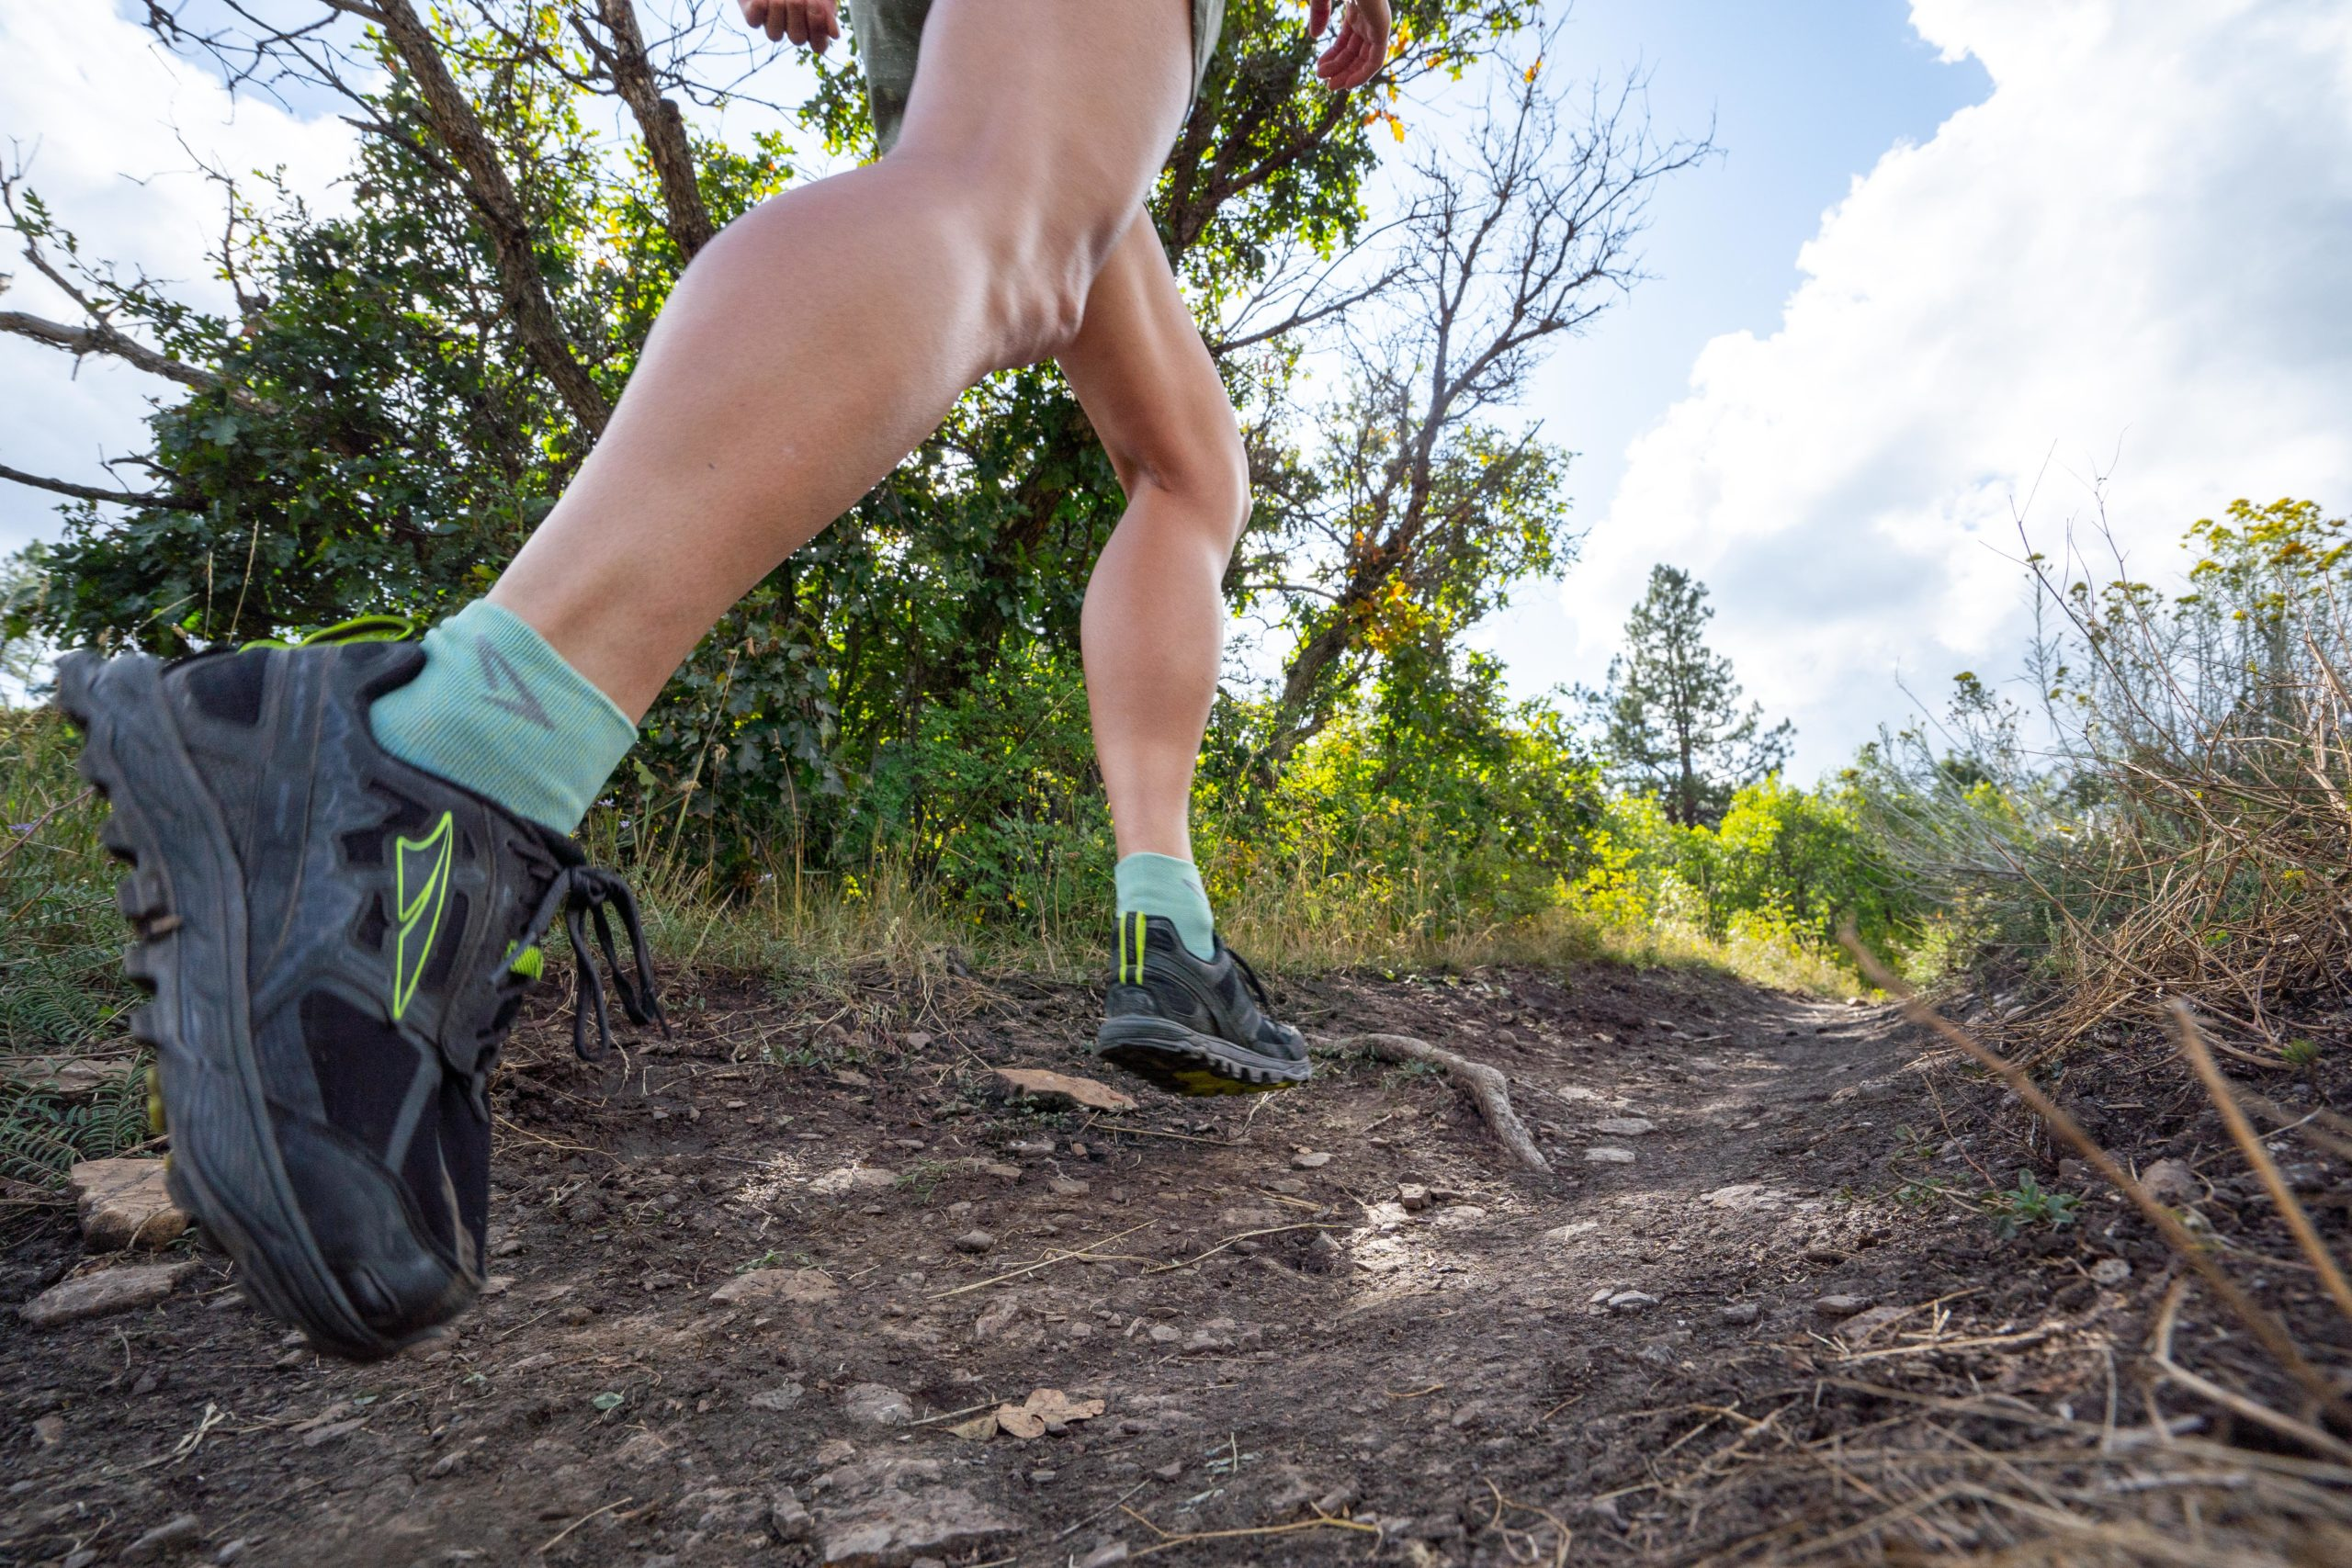 trail running june 2021 events